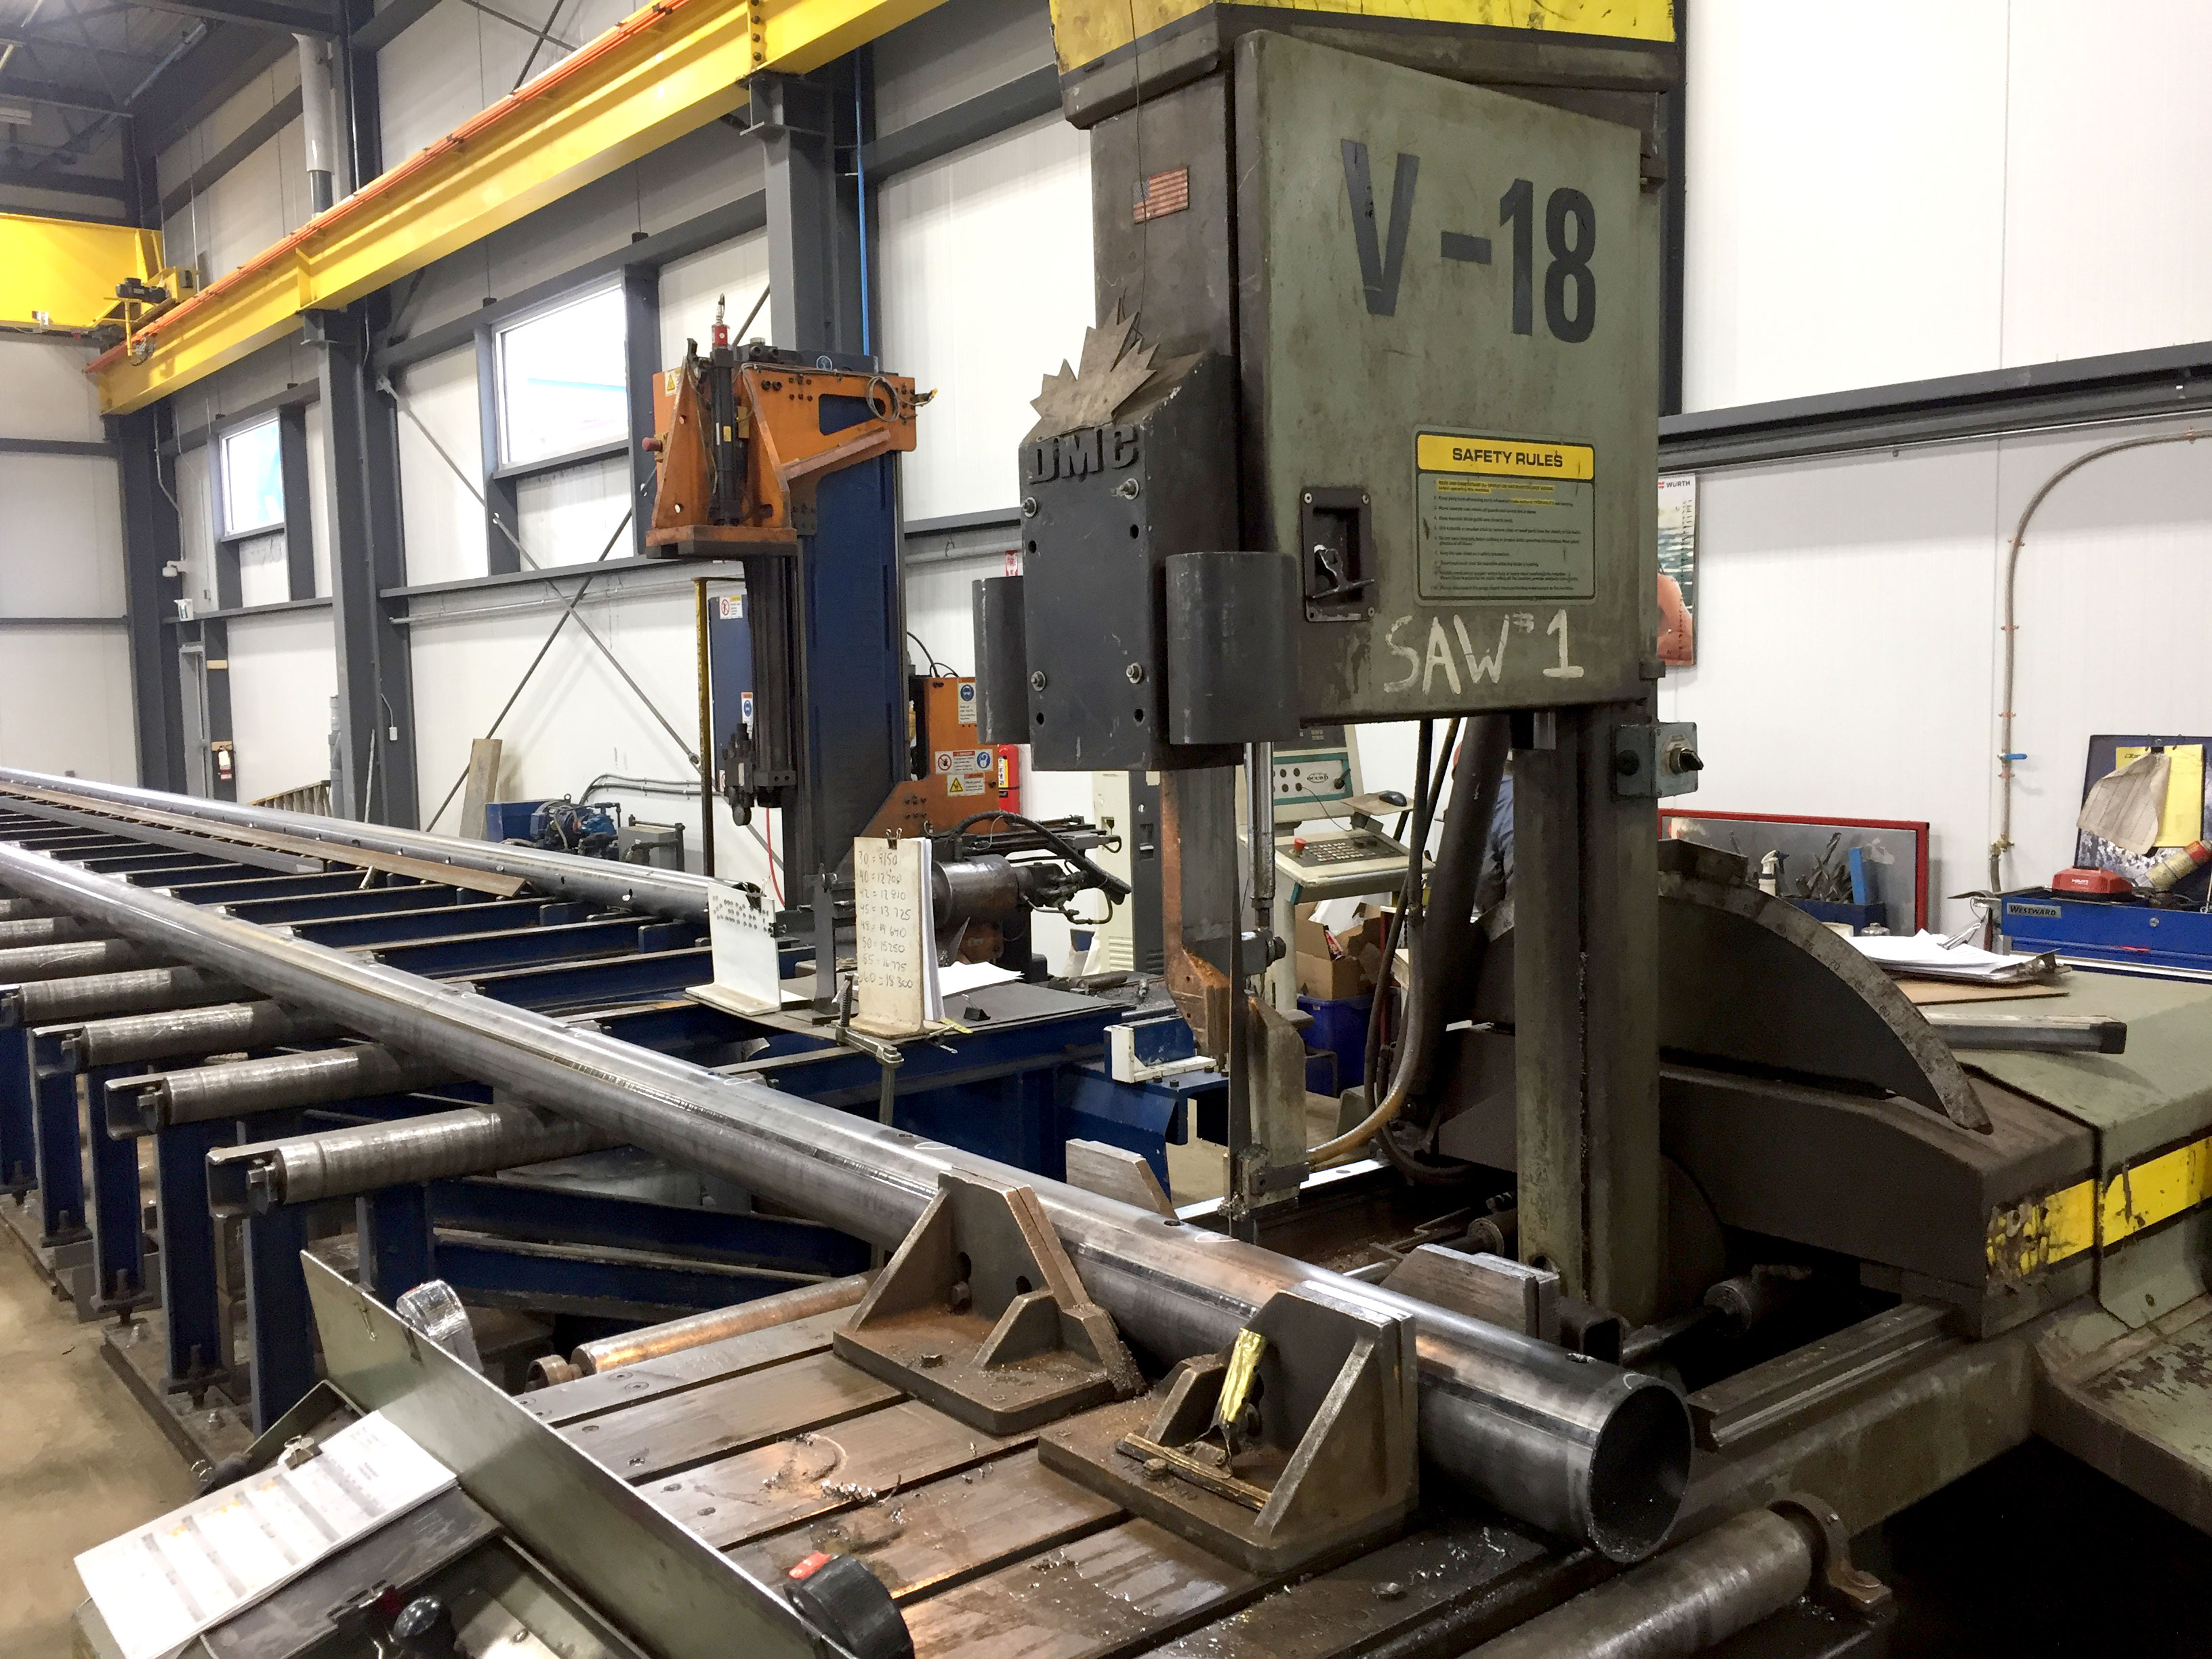 used HydMech V-18 band saw